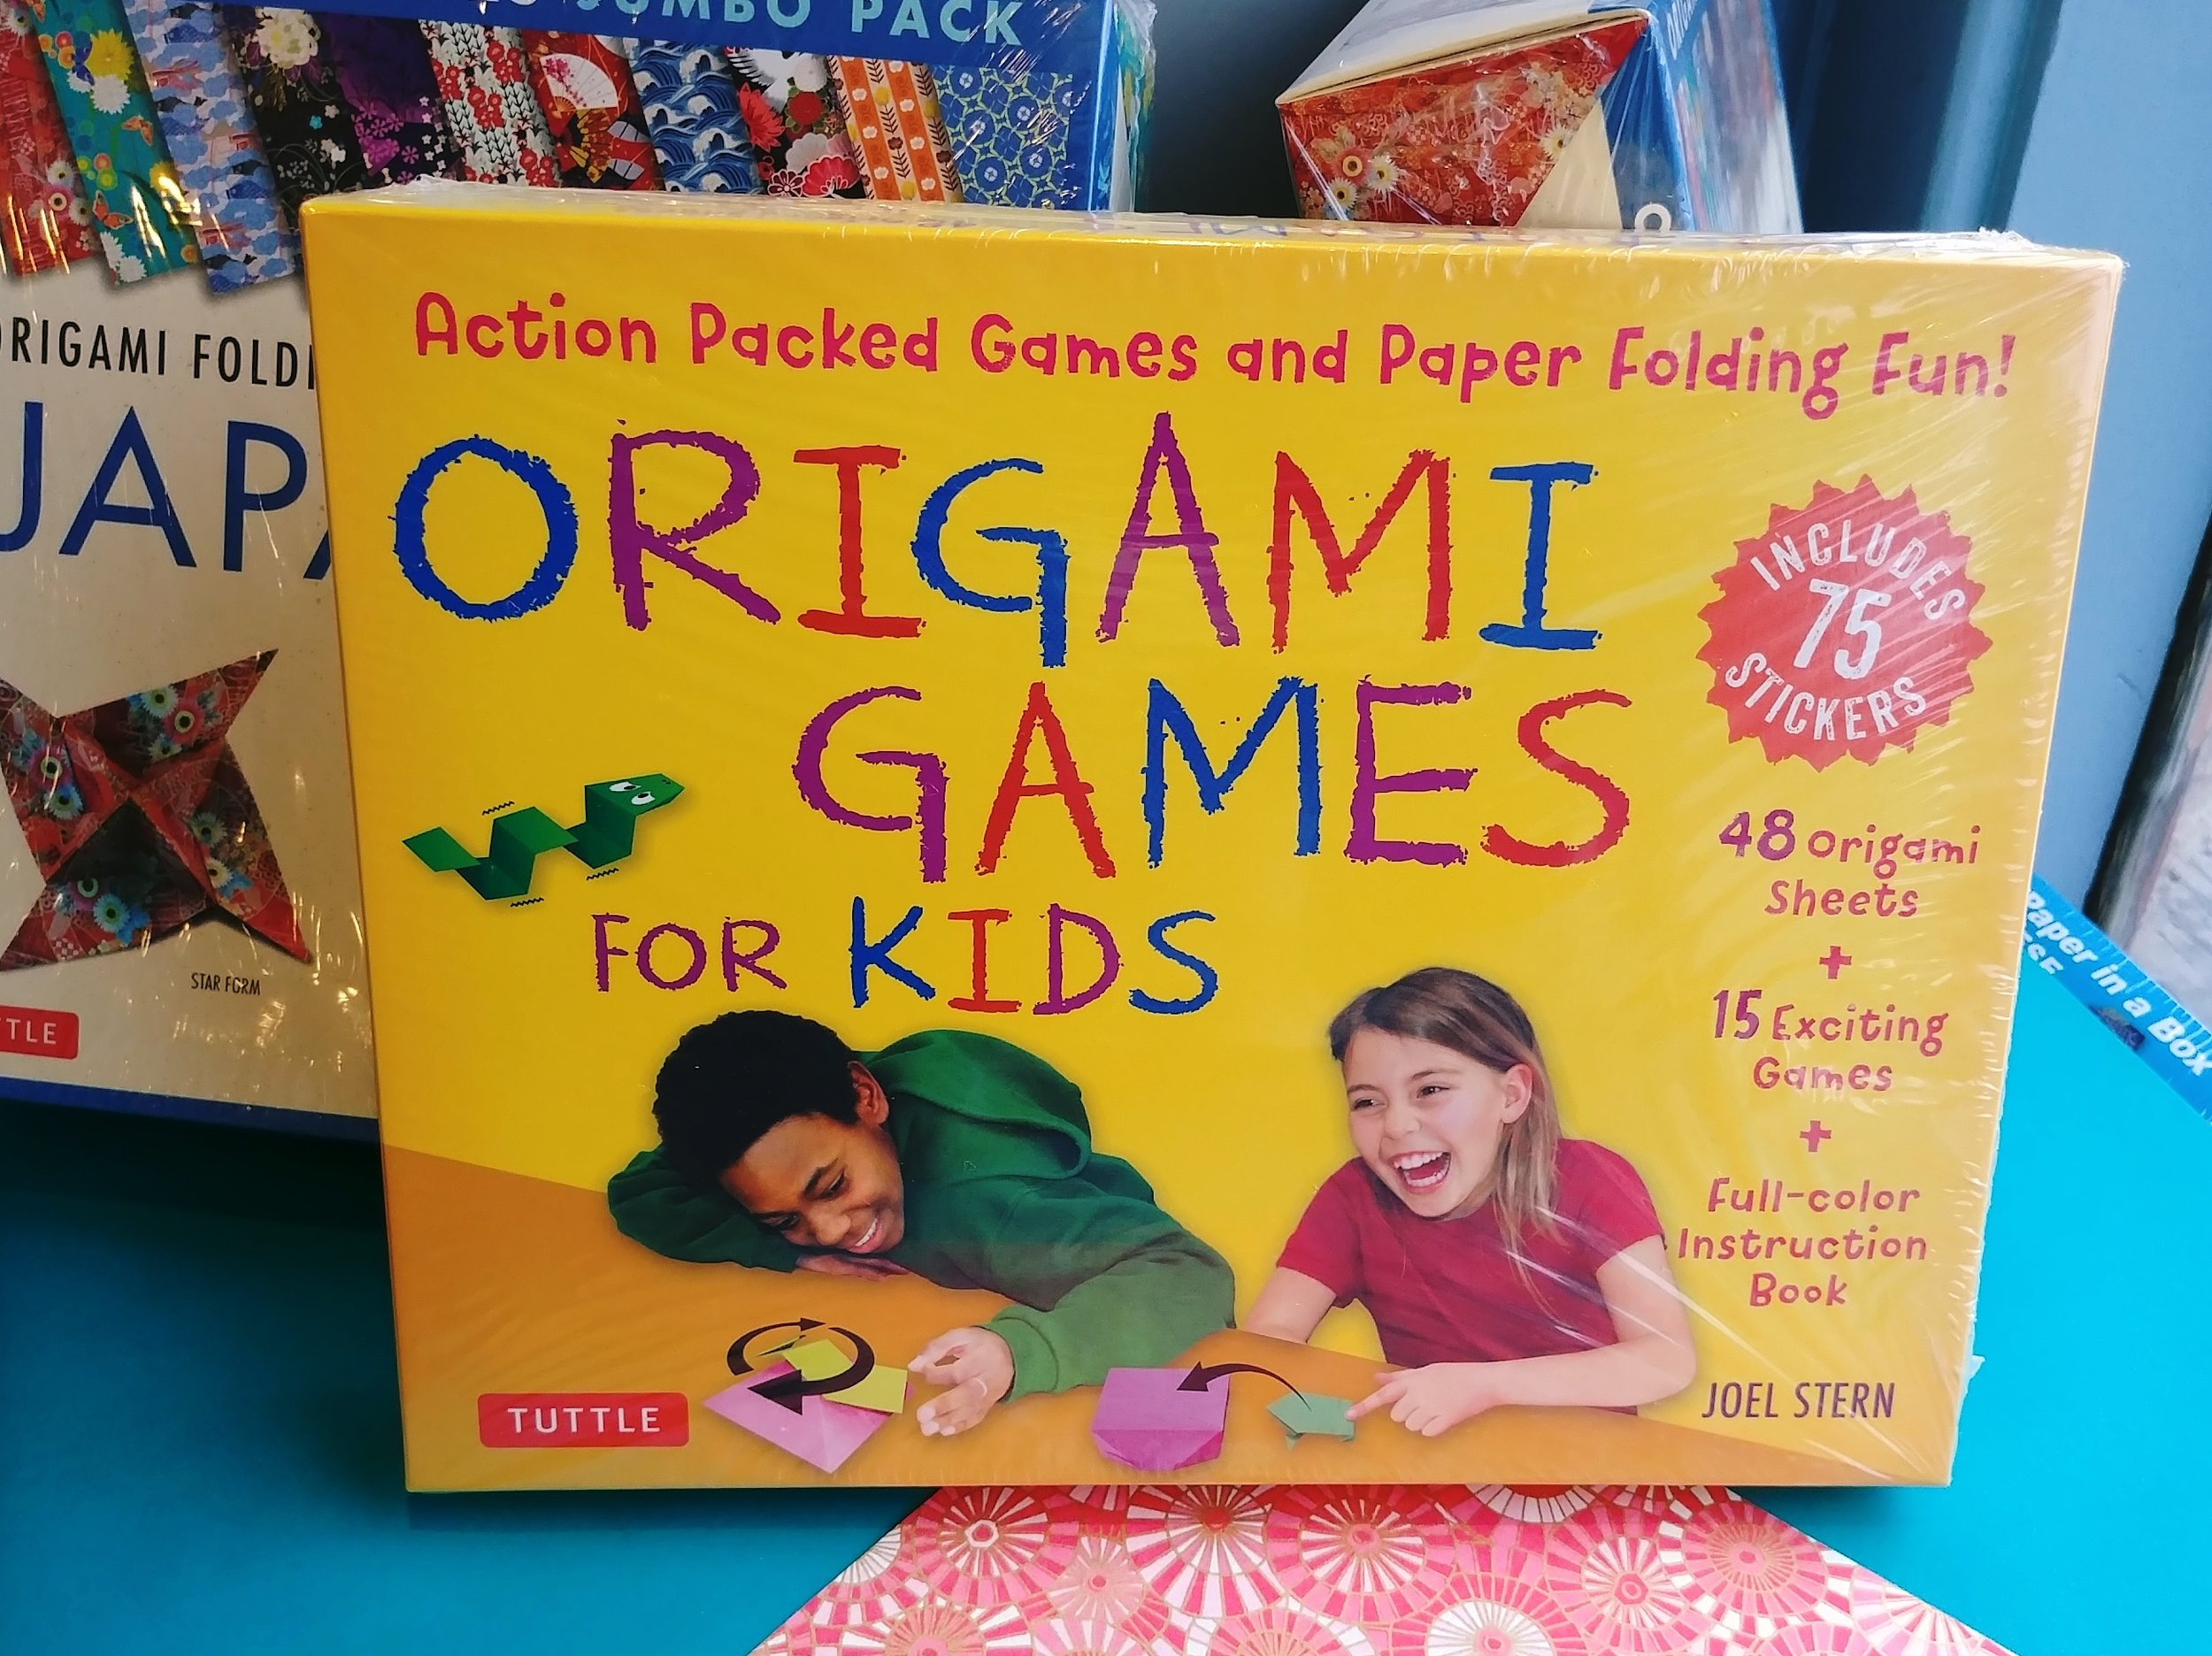 Origami activities for the kids will ensure everyone enjoys March Break. The Origami Games for Kids set contains 48 origami sheets and 75 stickers to create 15 games. A full-colour instruction book is included.  March 9, 2019